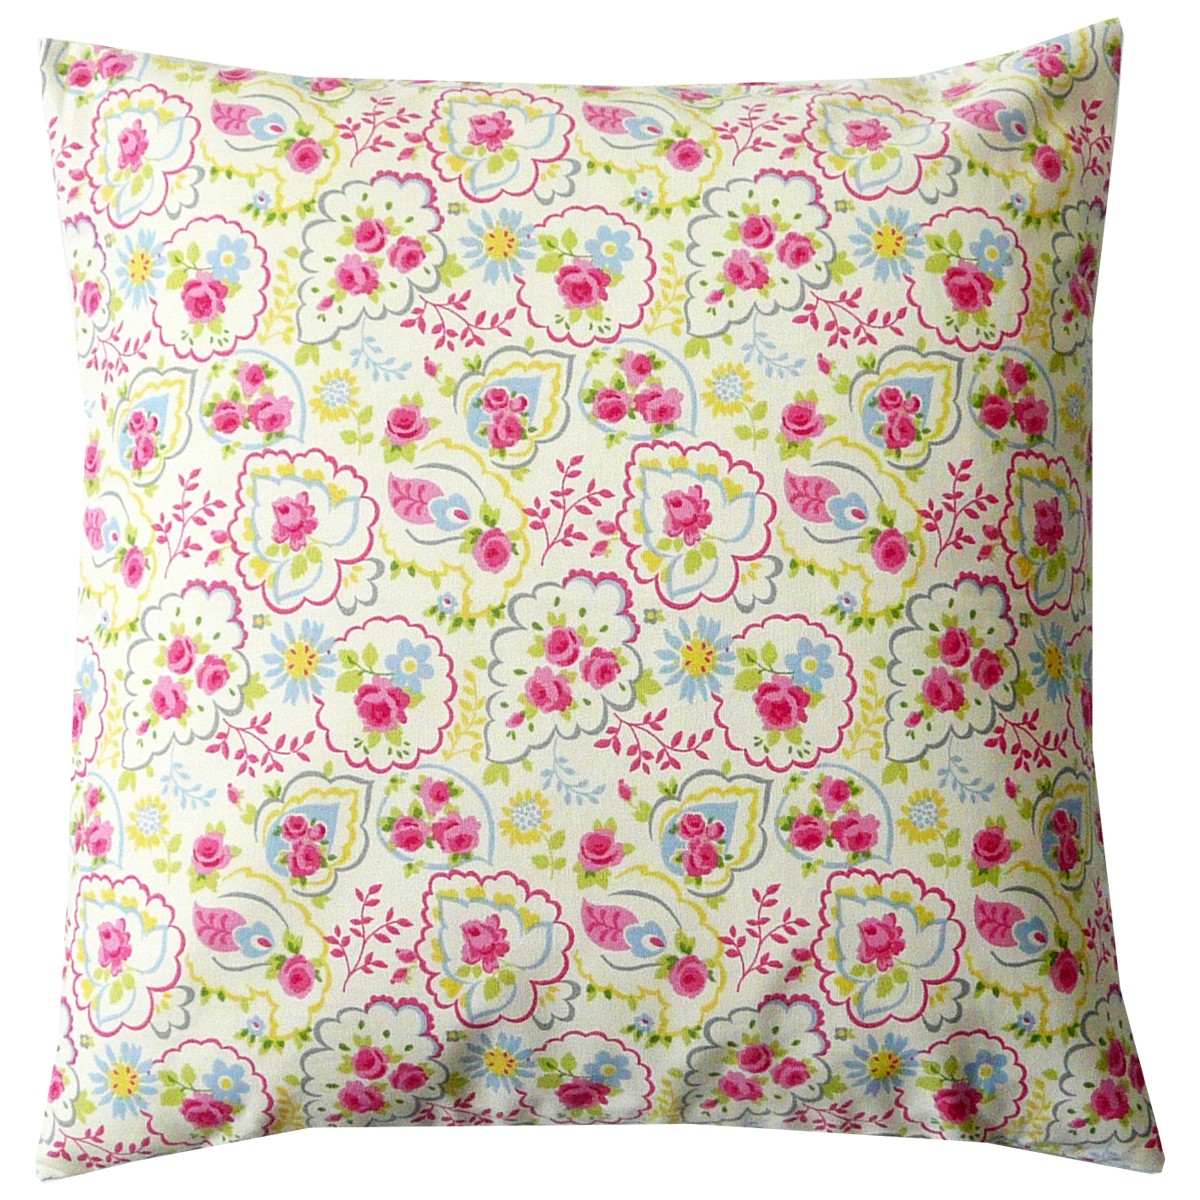 Printed Paisley Rose 100% Cotton 45cm x45cm Piped Cushion Cover Only